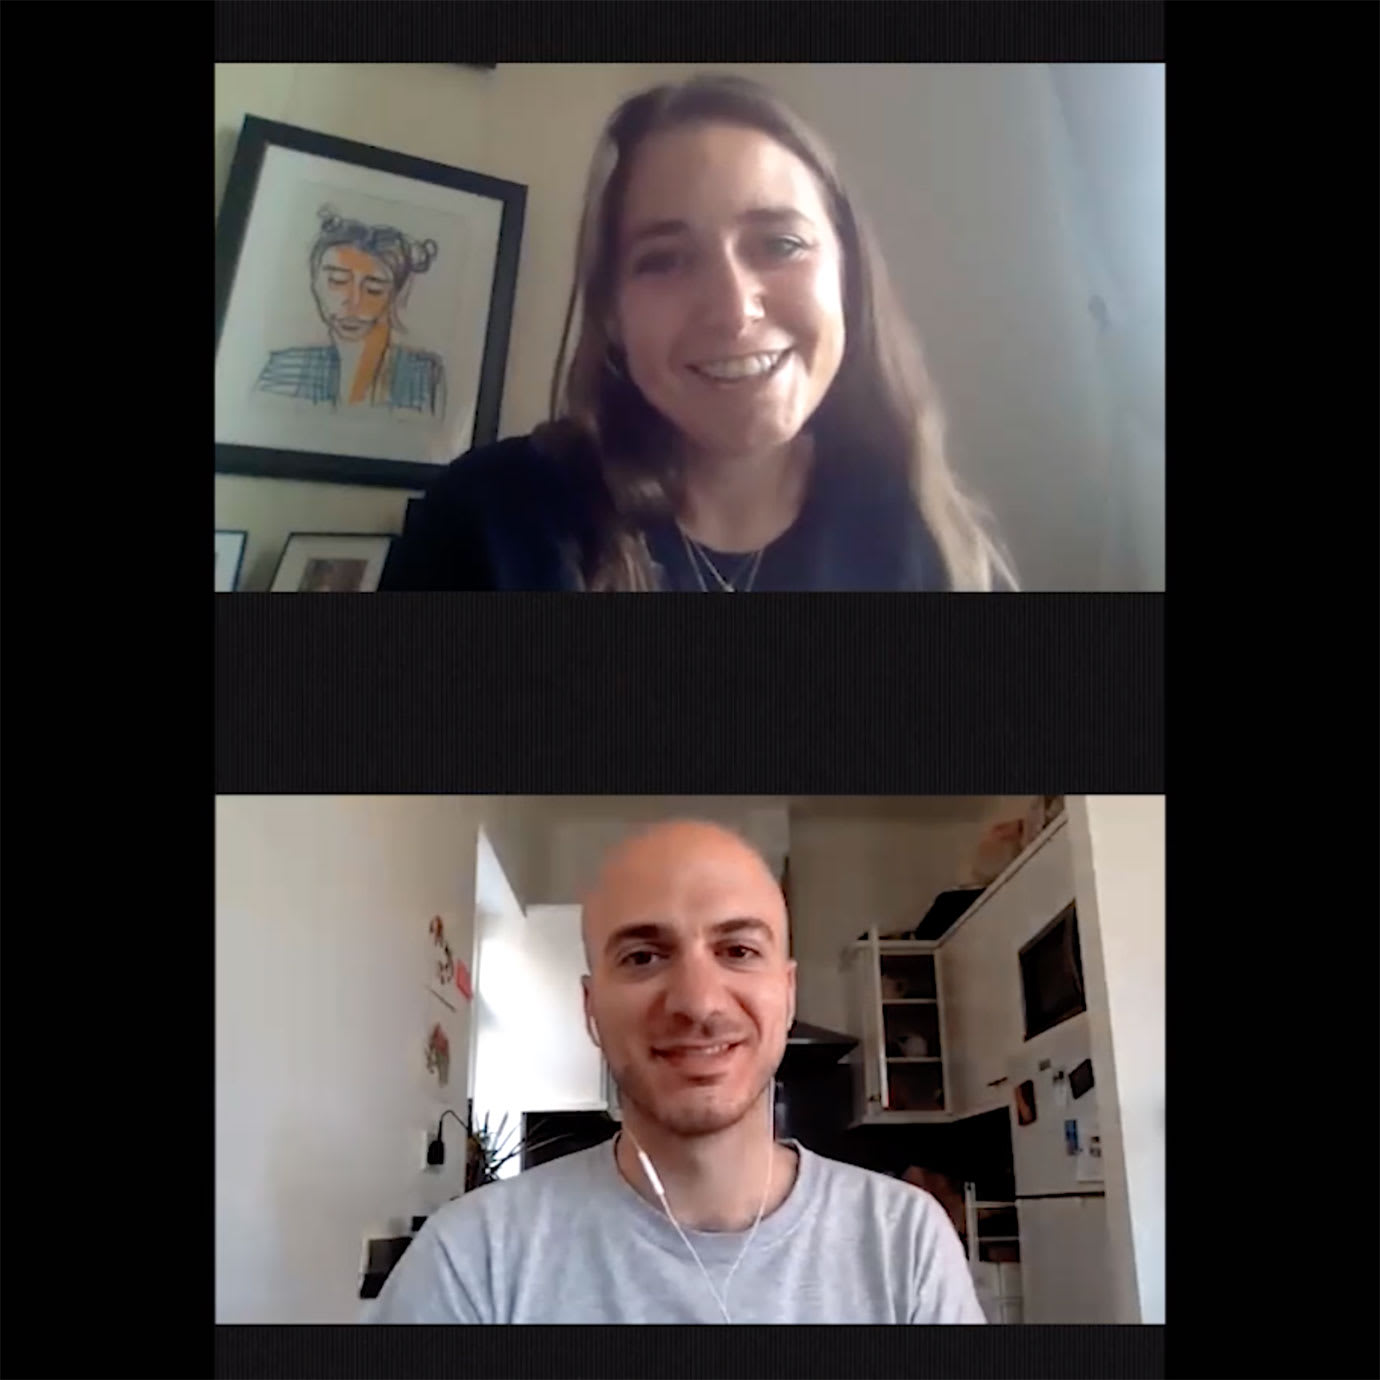 A woman and a man on a video call.